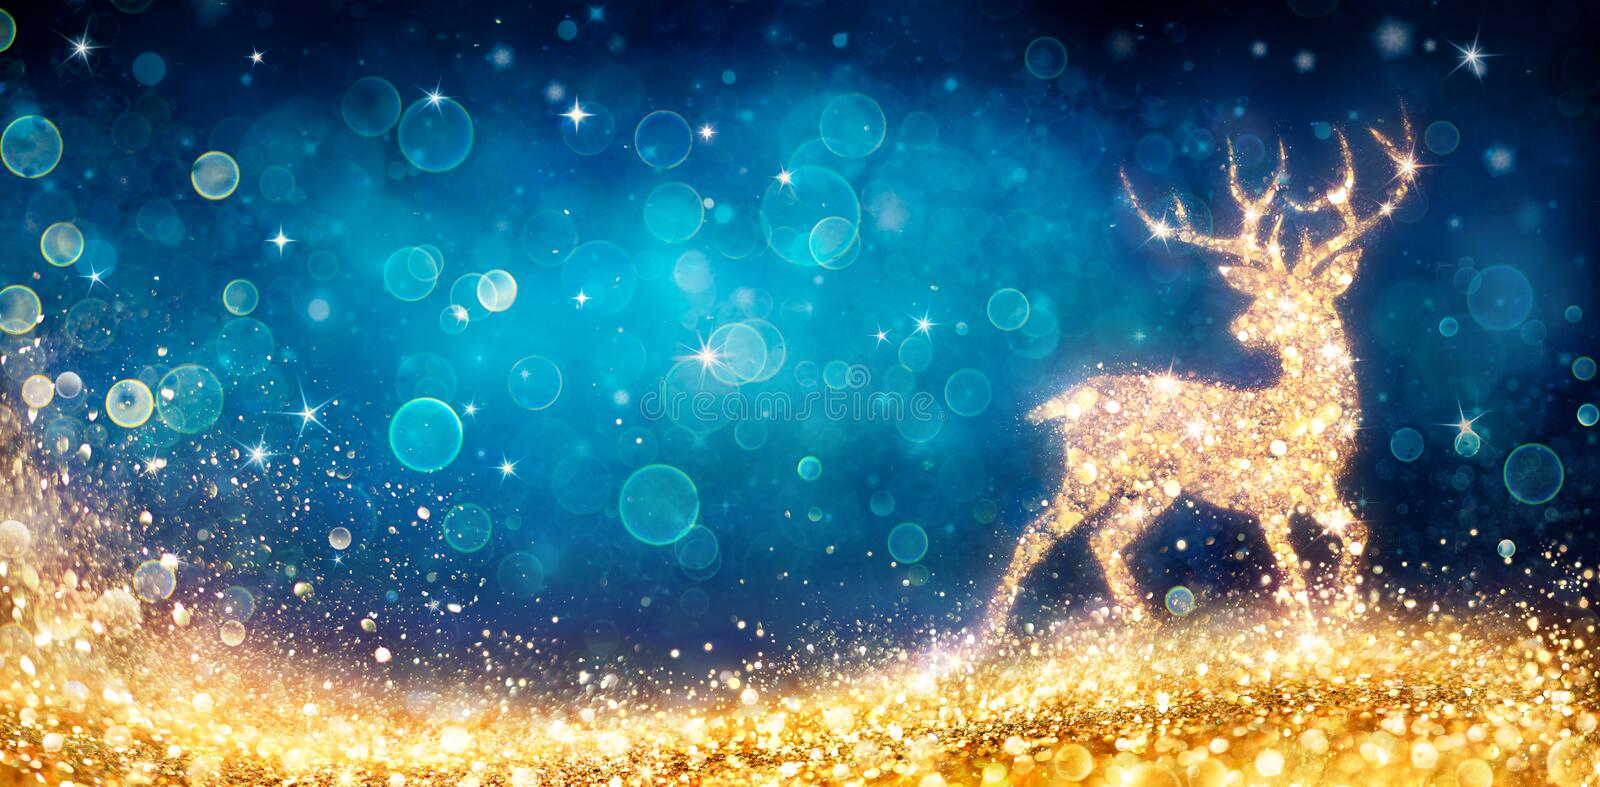 Jul - Magic Golden Deer i Shiny Blue royaltyfria bilder